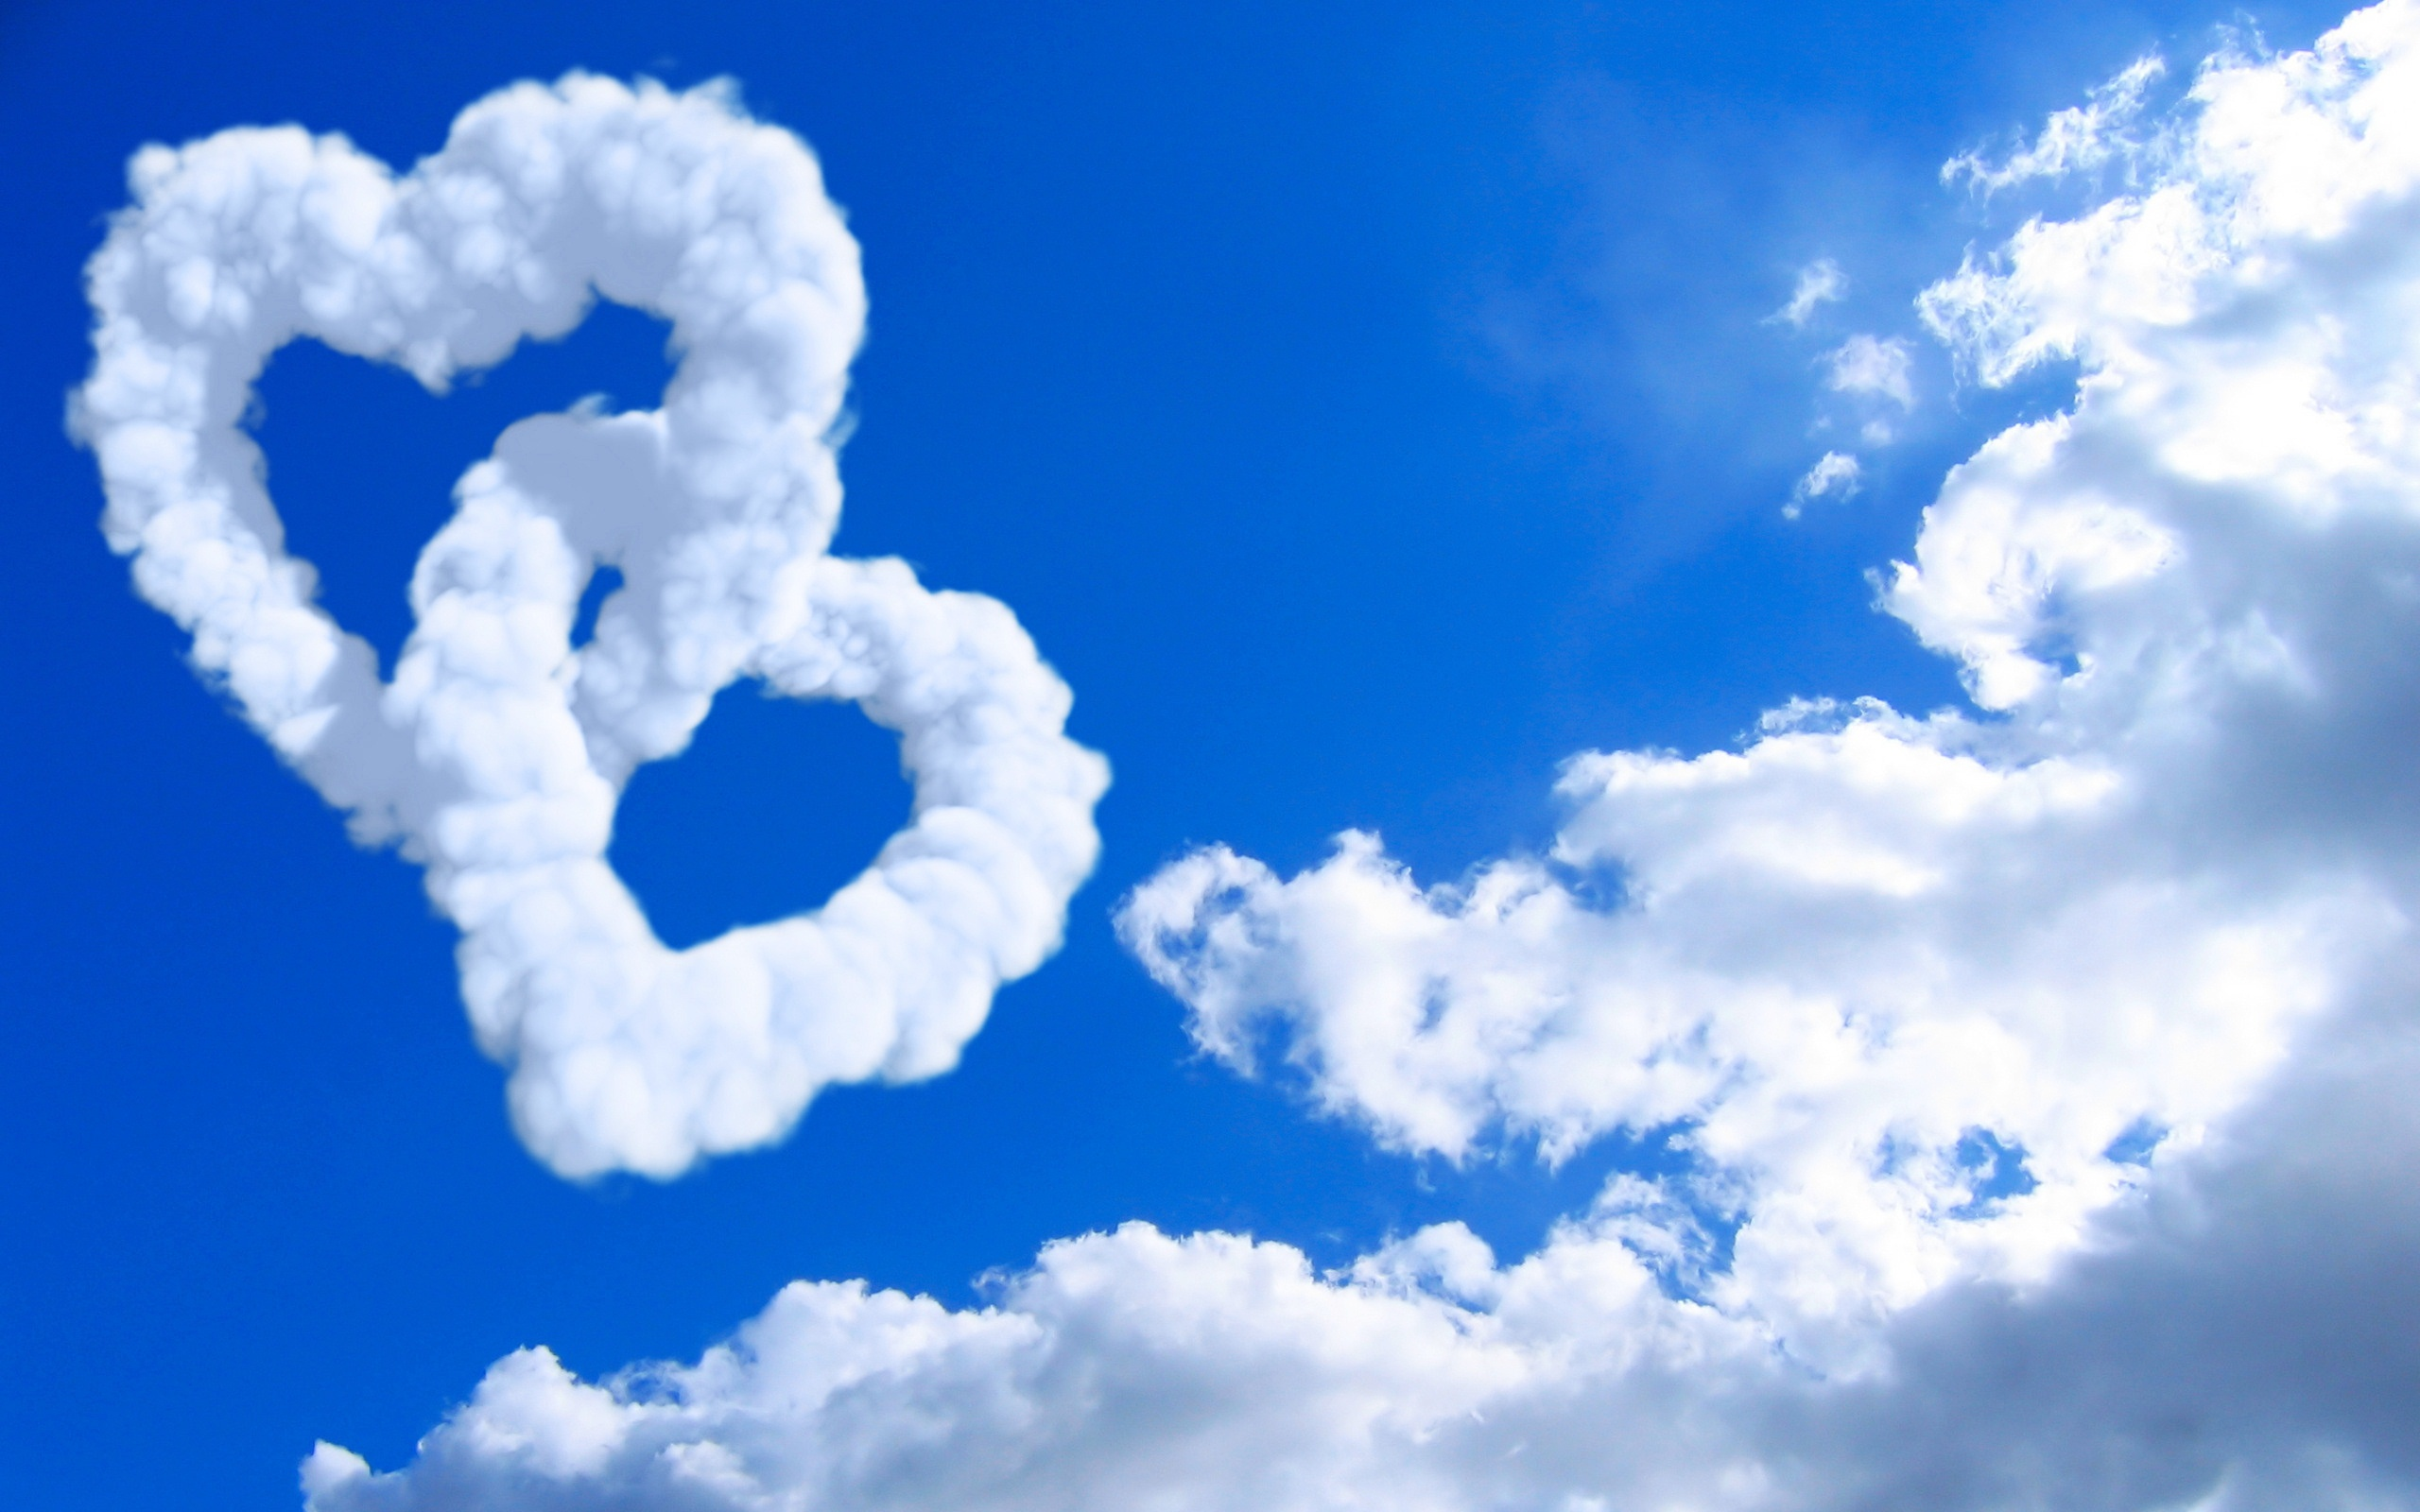 Hearts in Clouds 852.4 Kb